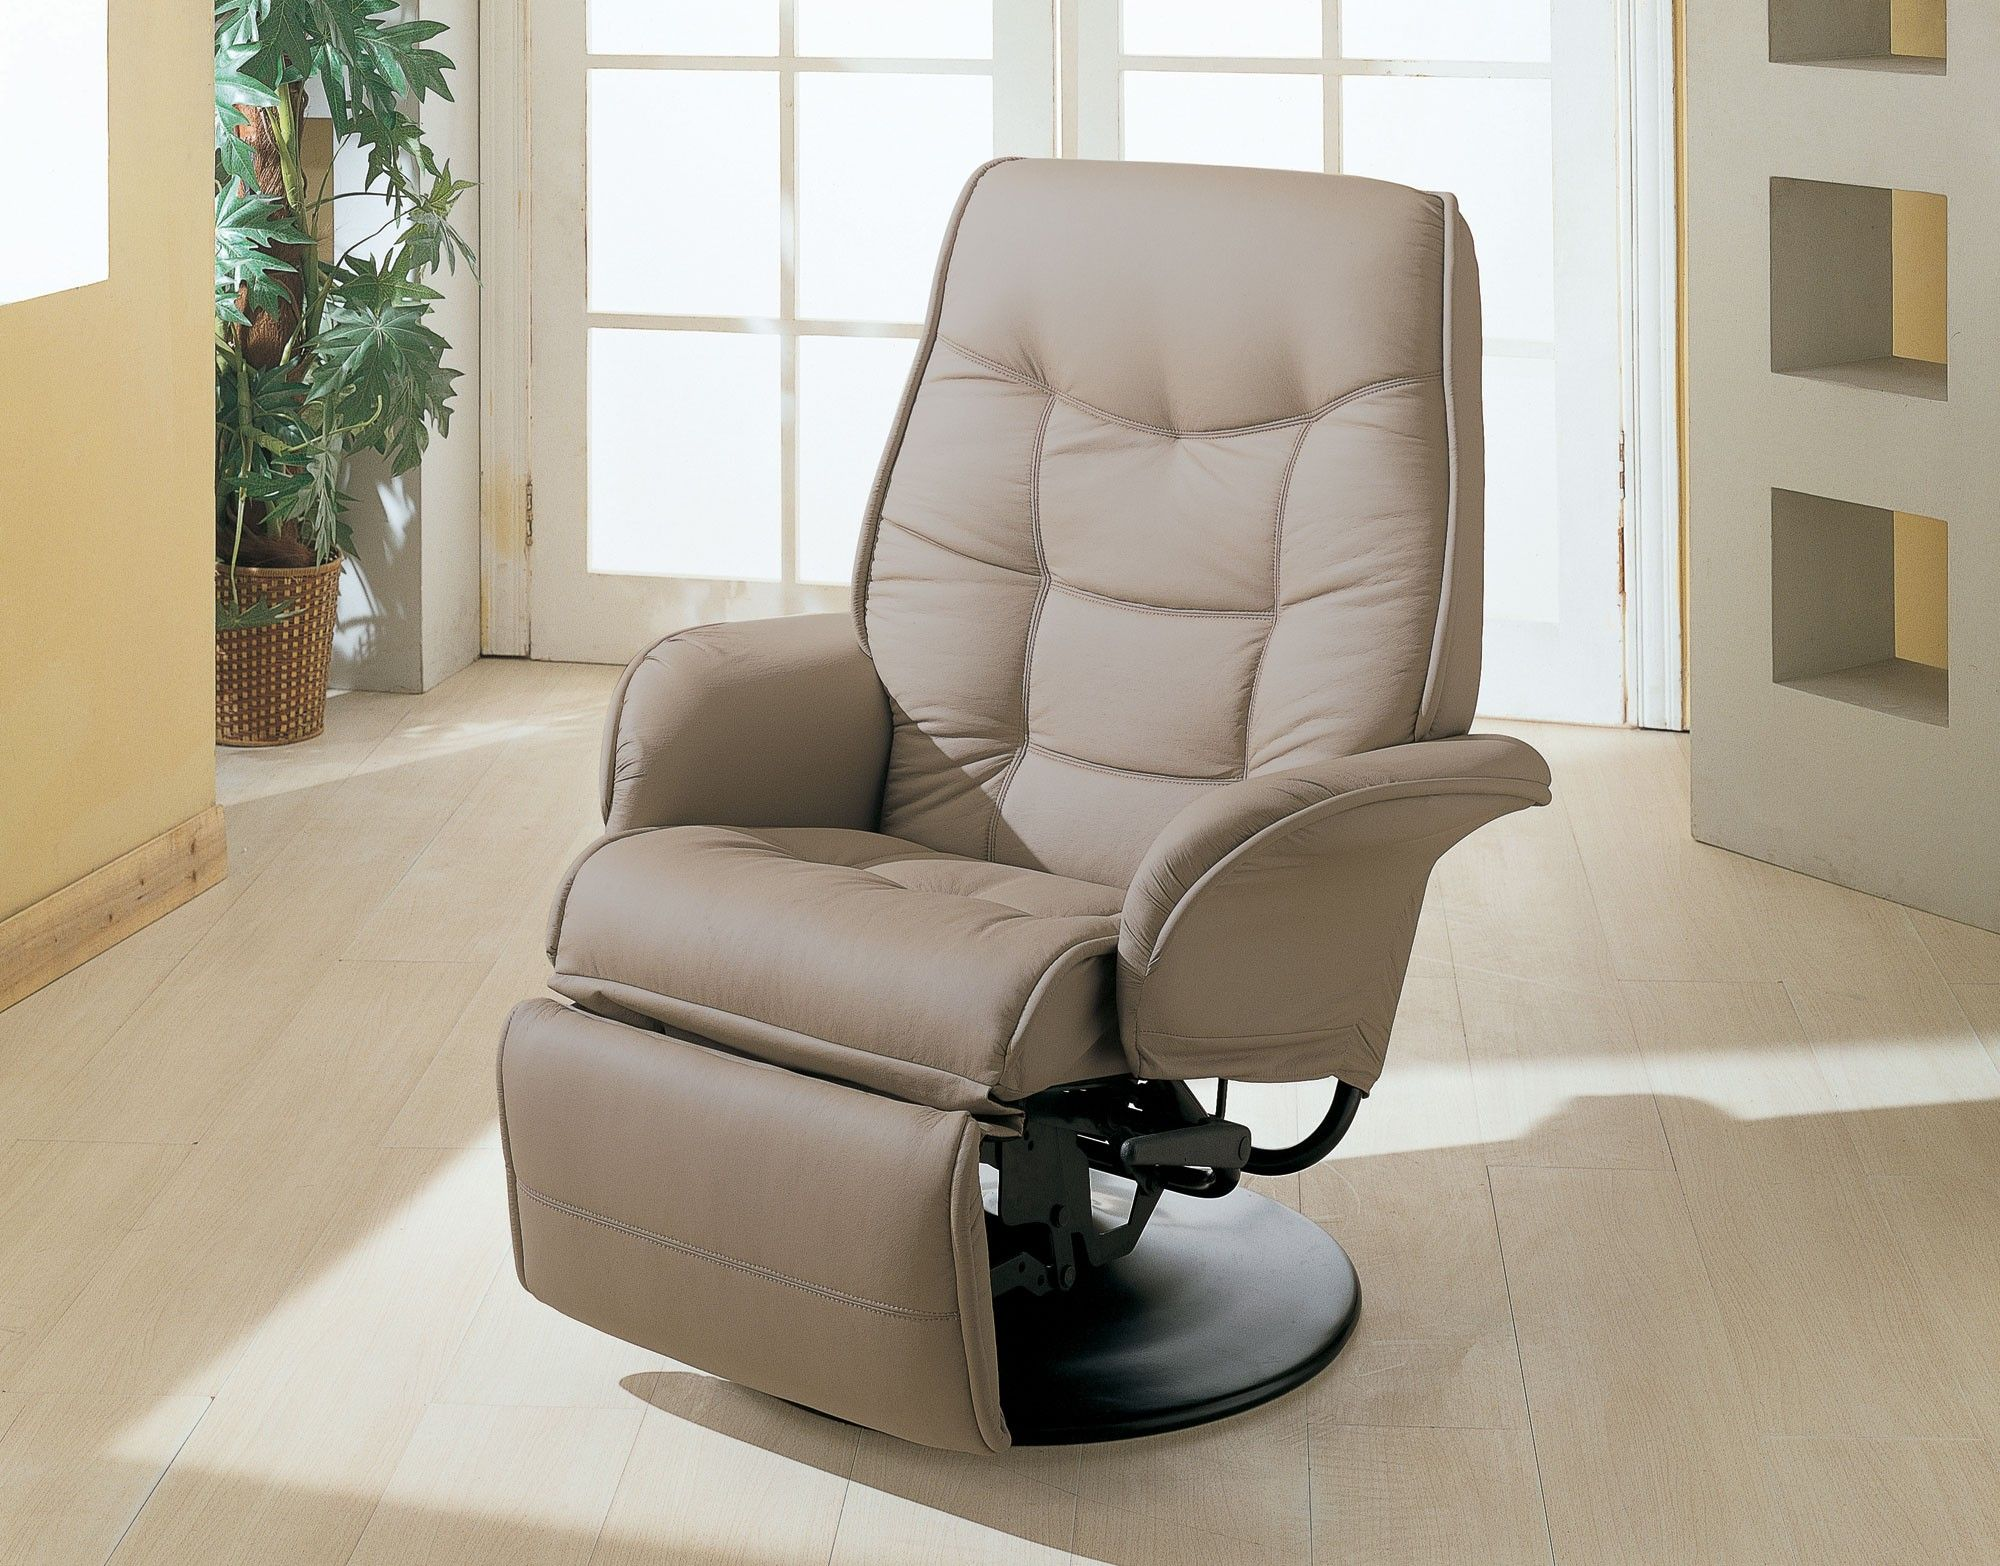 Berri Beige Recliner & Berri Beige Recliner | Recliner Beige and Coaster furniture islam-shia.org